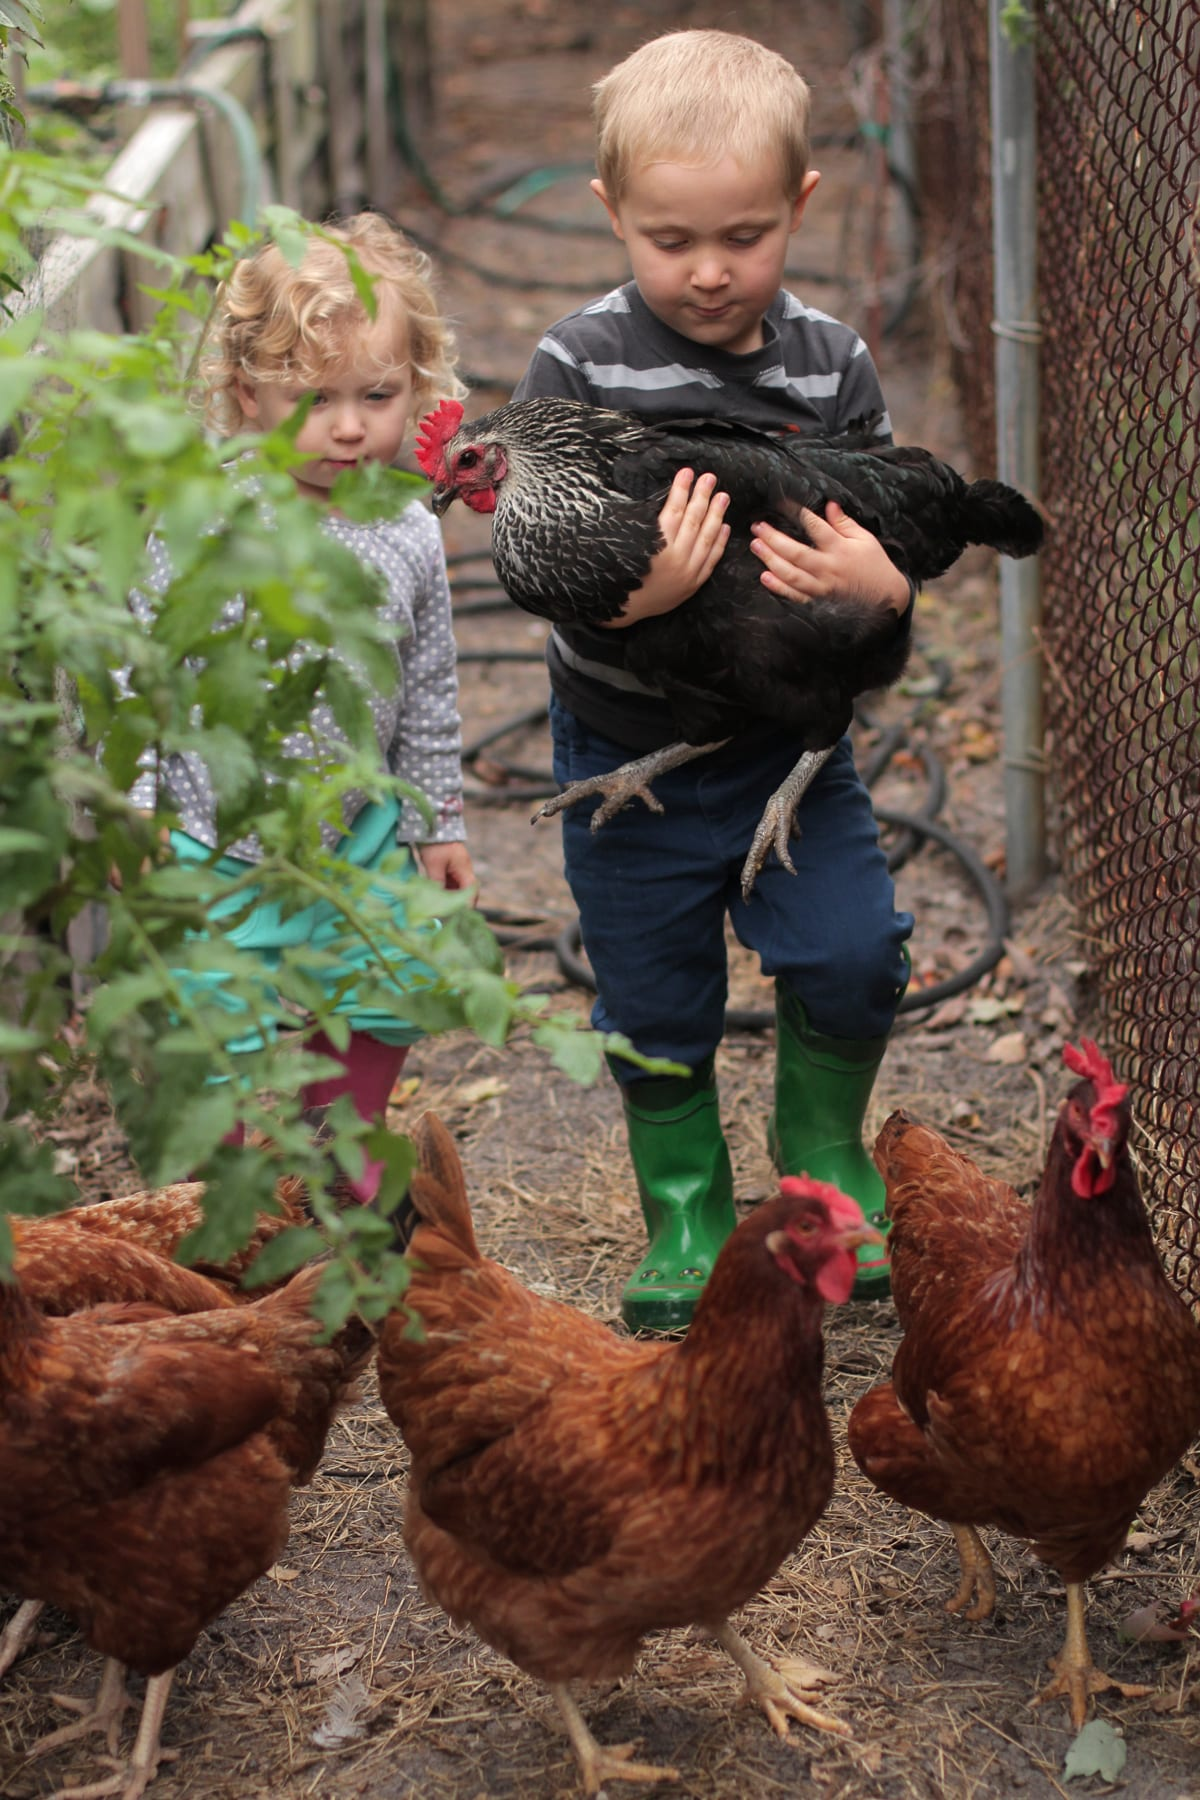 Five Reasons to Not Keep Chickens - Live Simply